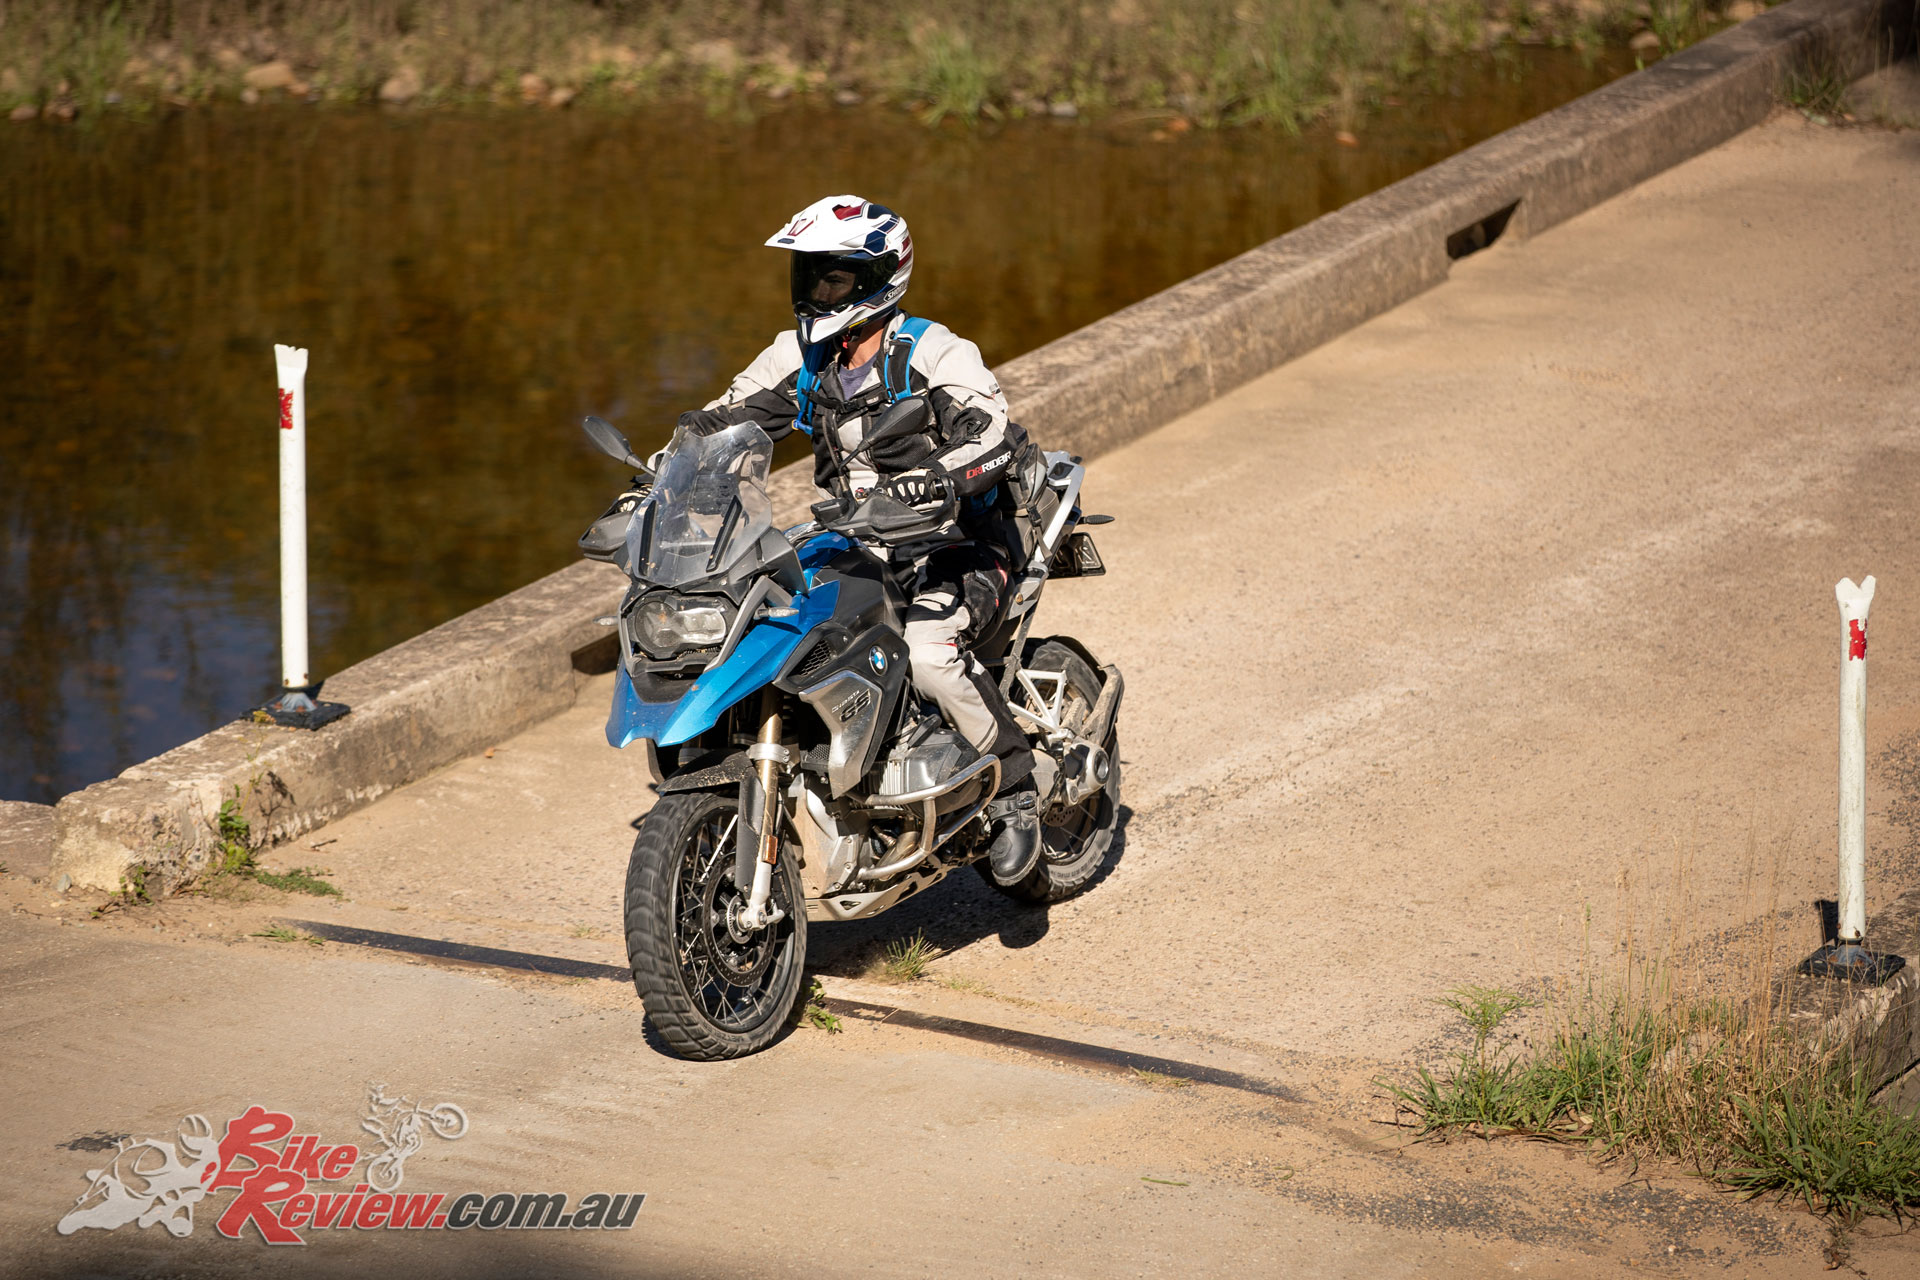 The R 1250 GS has a clear advantage over the F 850 GS, with a more stable and neutral handling characteristic